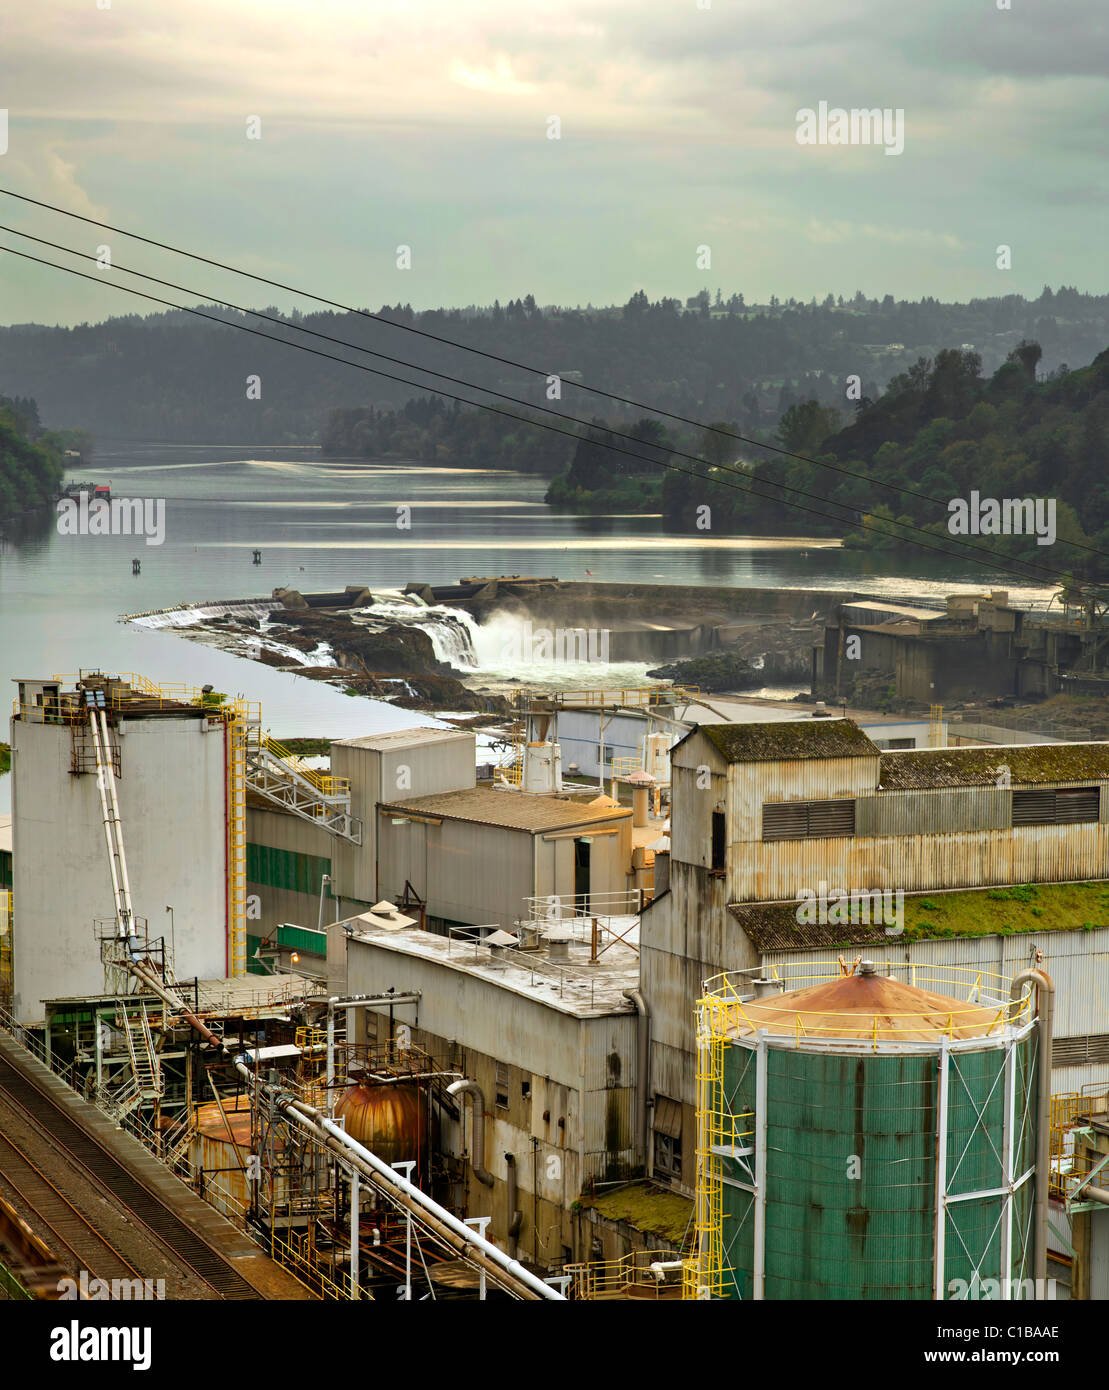 Electricity Power Plant at Willamette Falls Dam in Oregon City - Stock Image